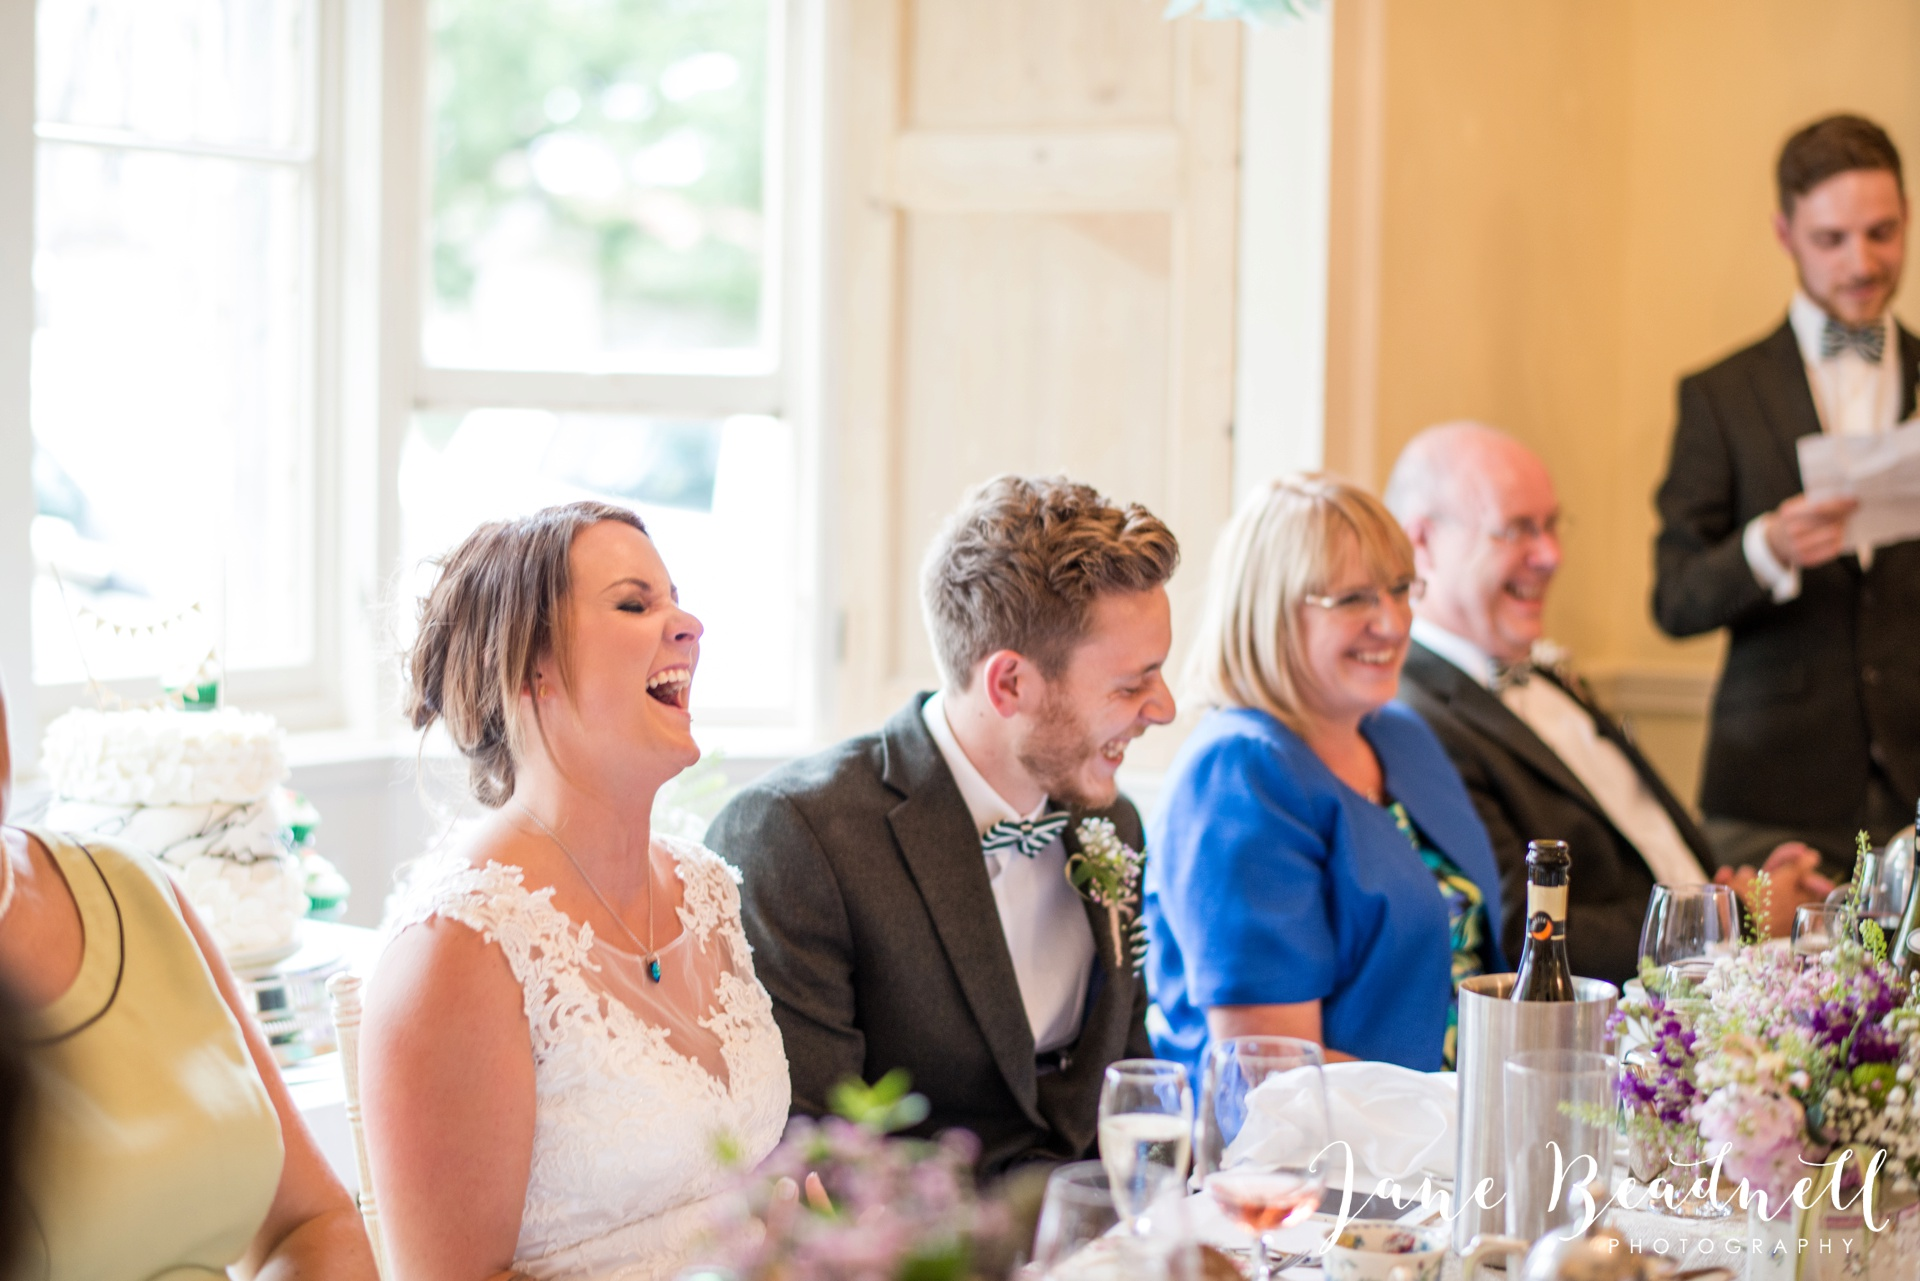 Jane Beadnell fine art wedding photographer The Old Deanery Ripon_0067